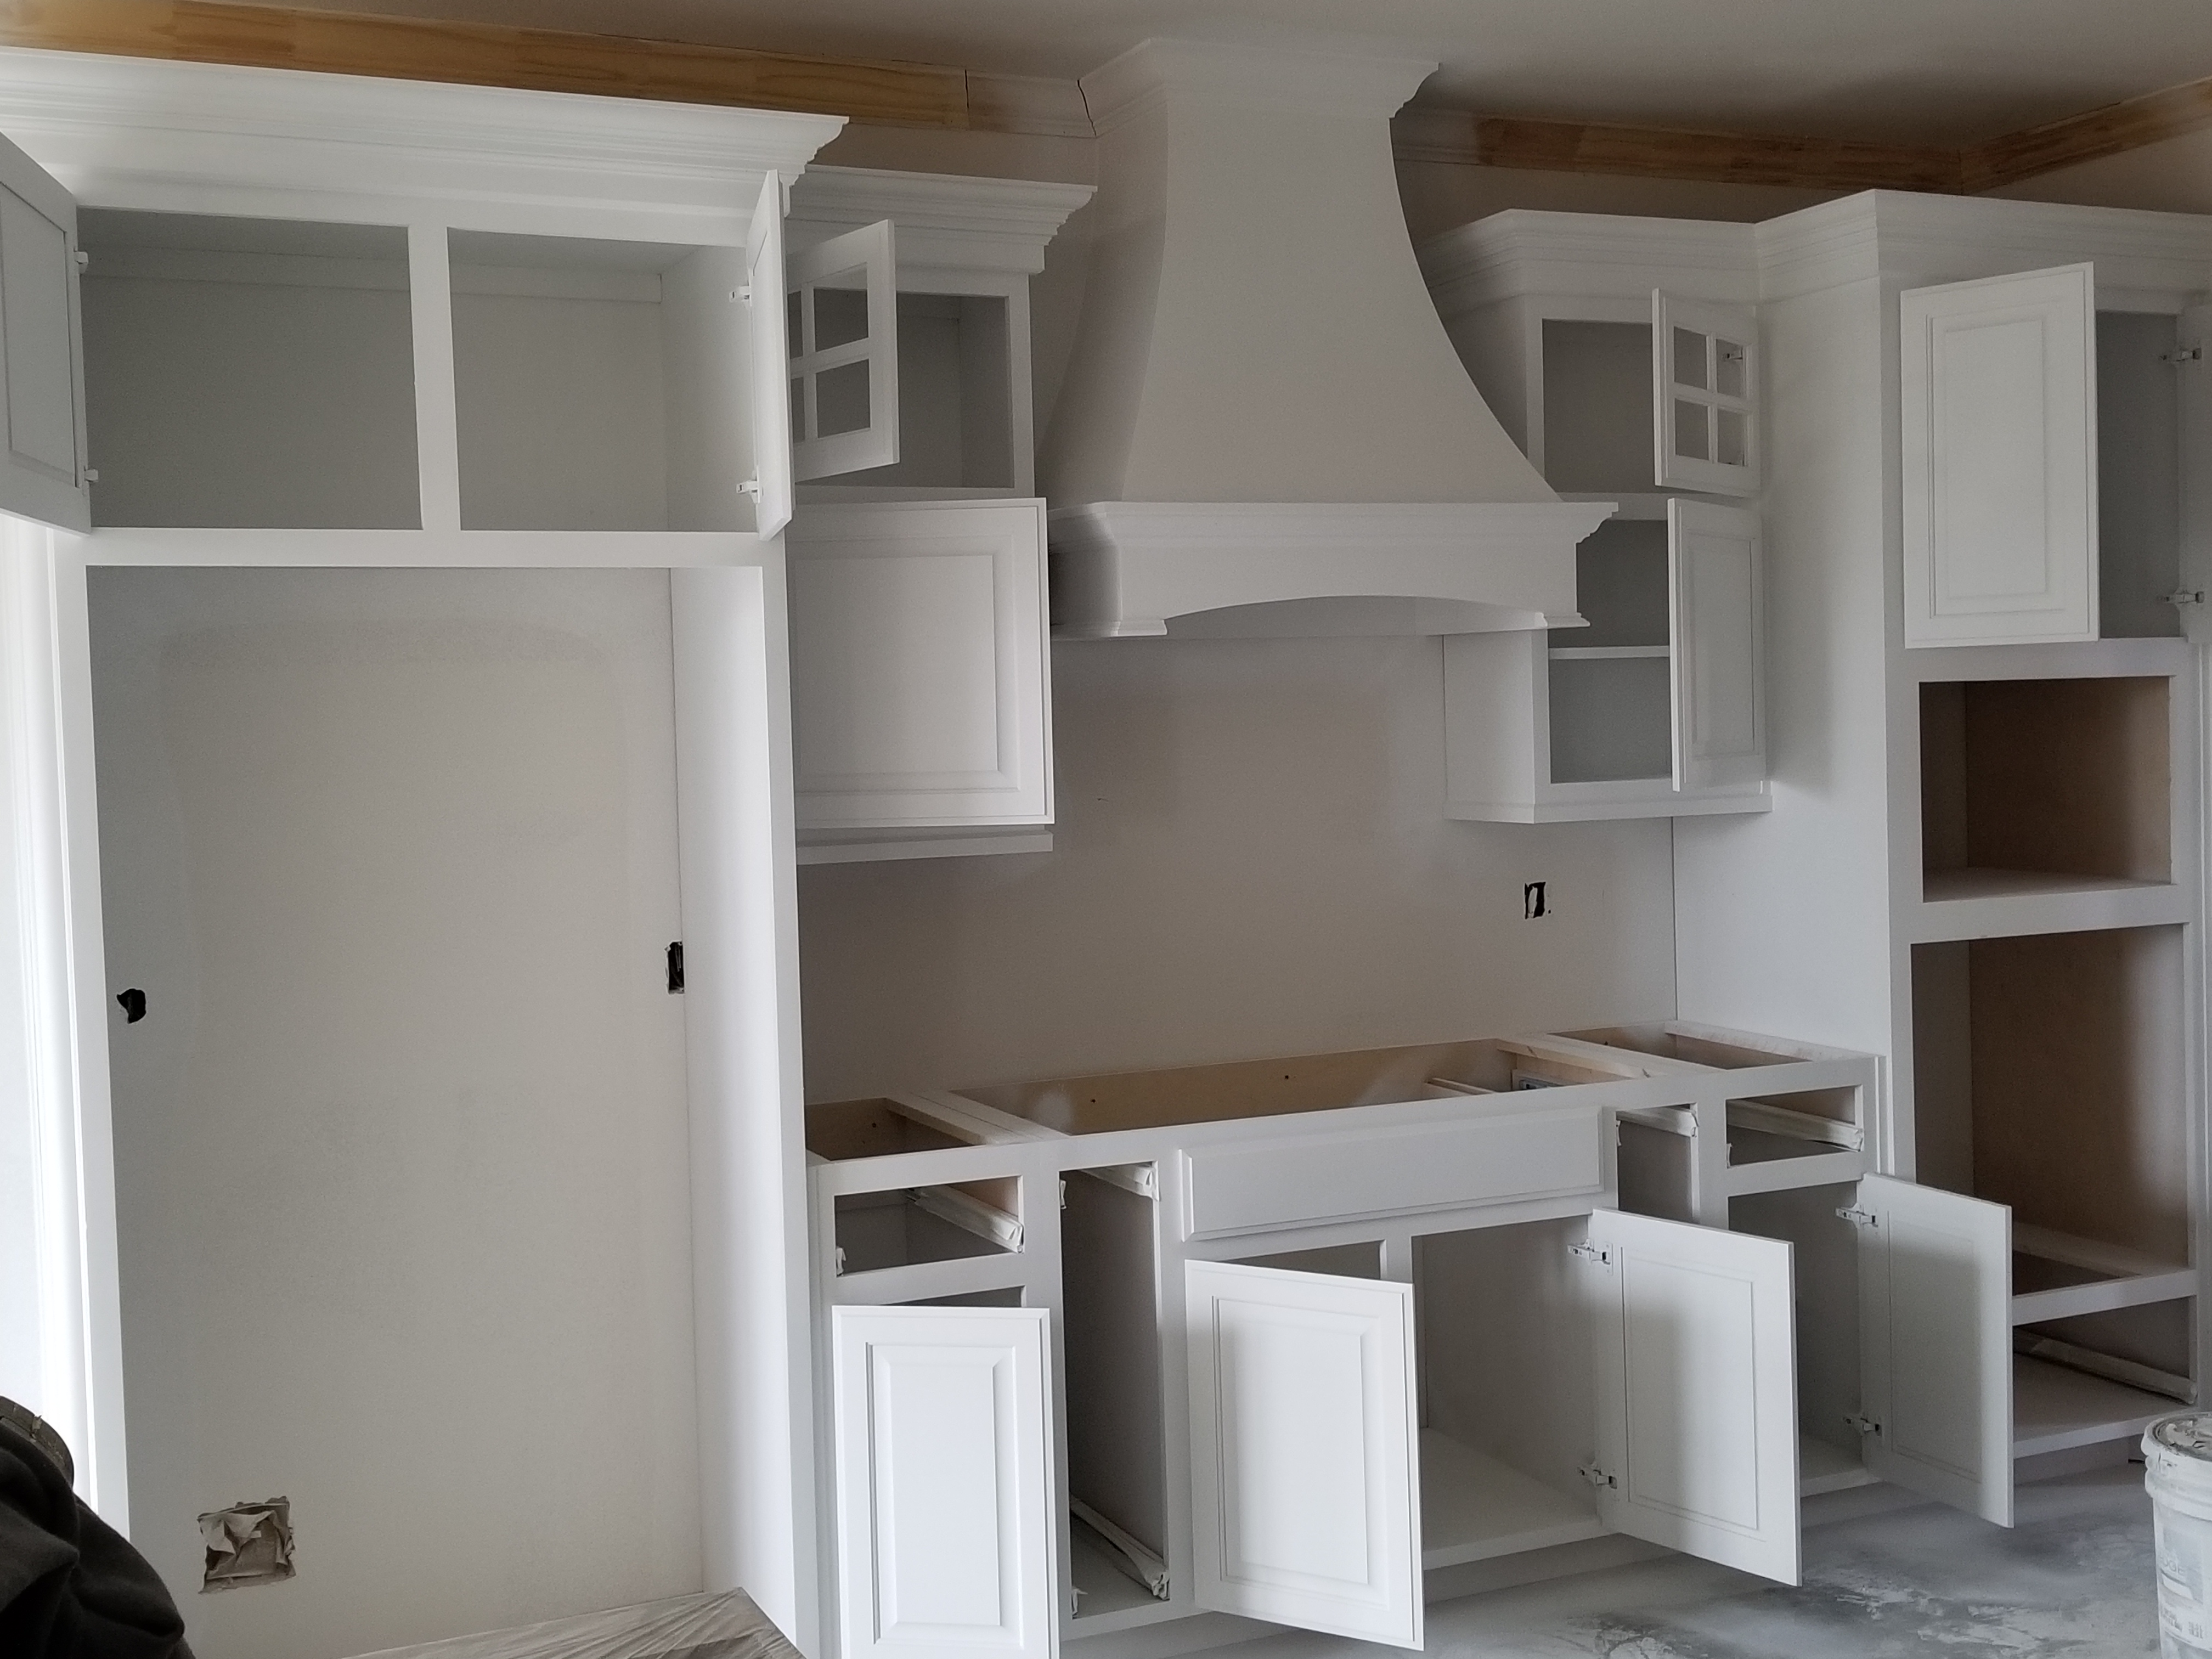 Cabinets painting started